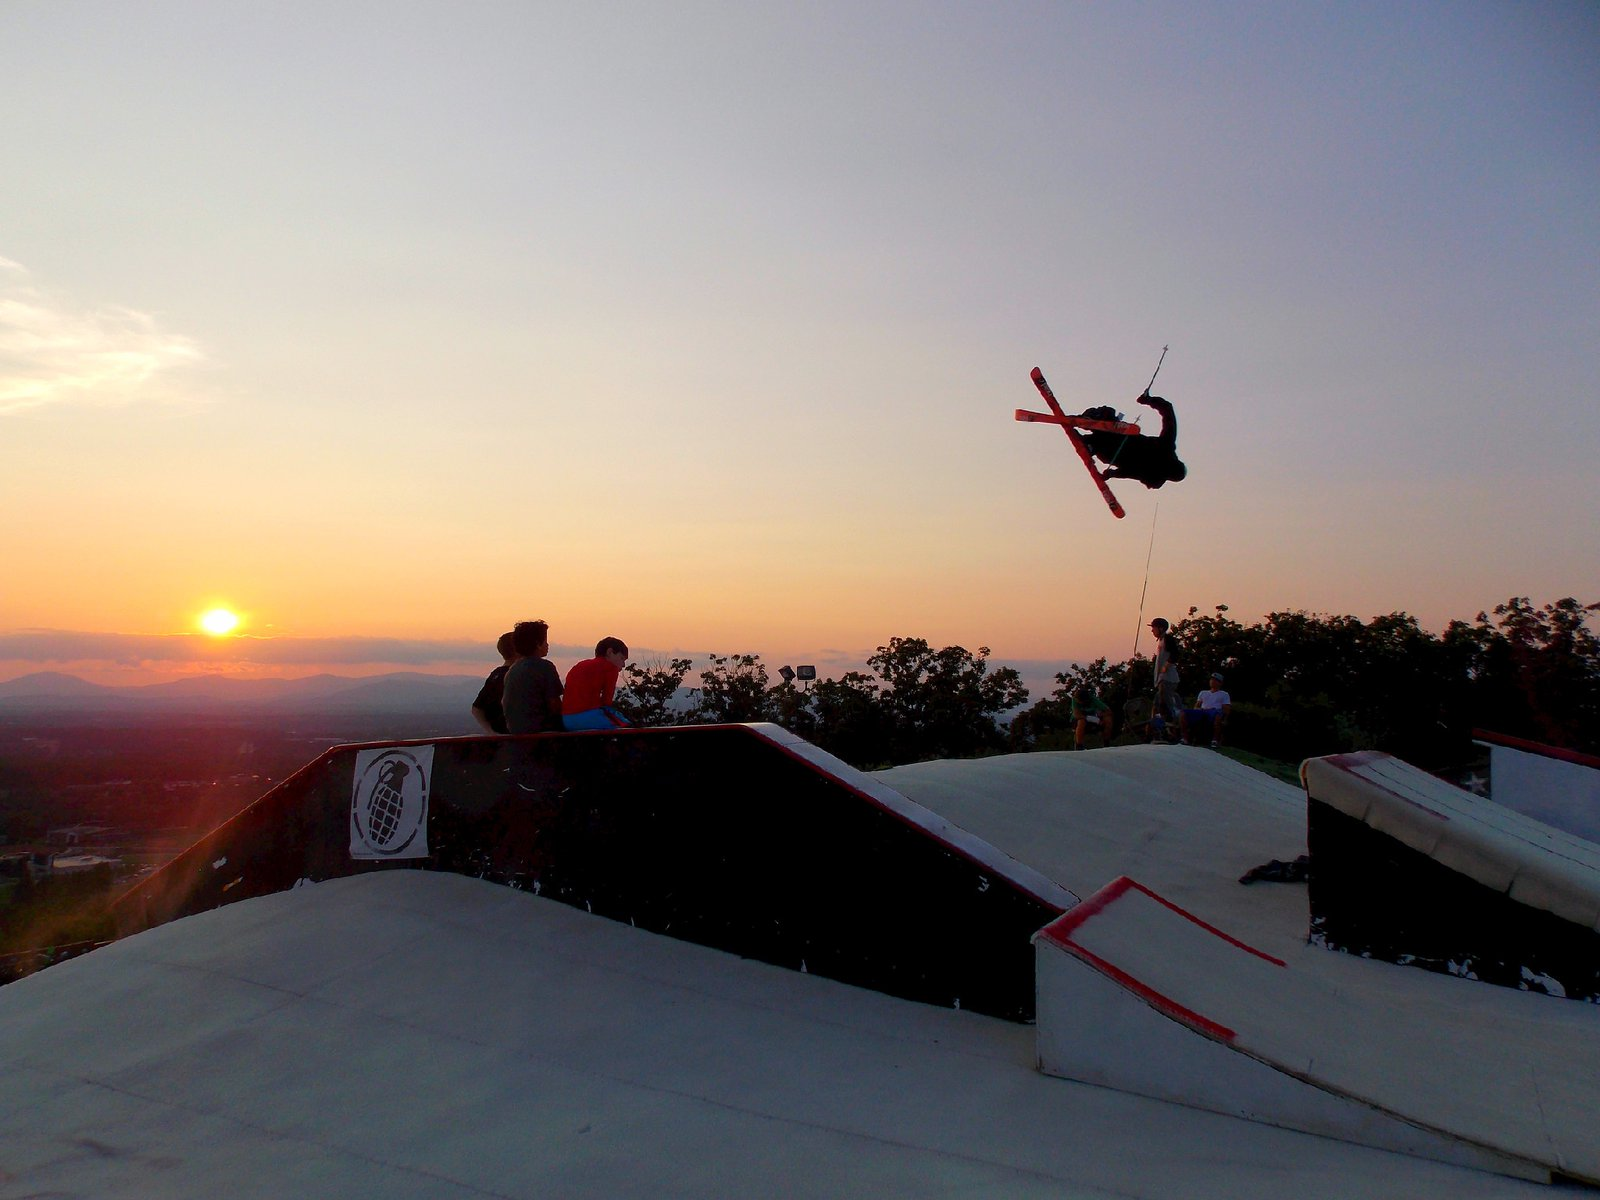 Sunset Session at Snowflex